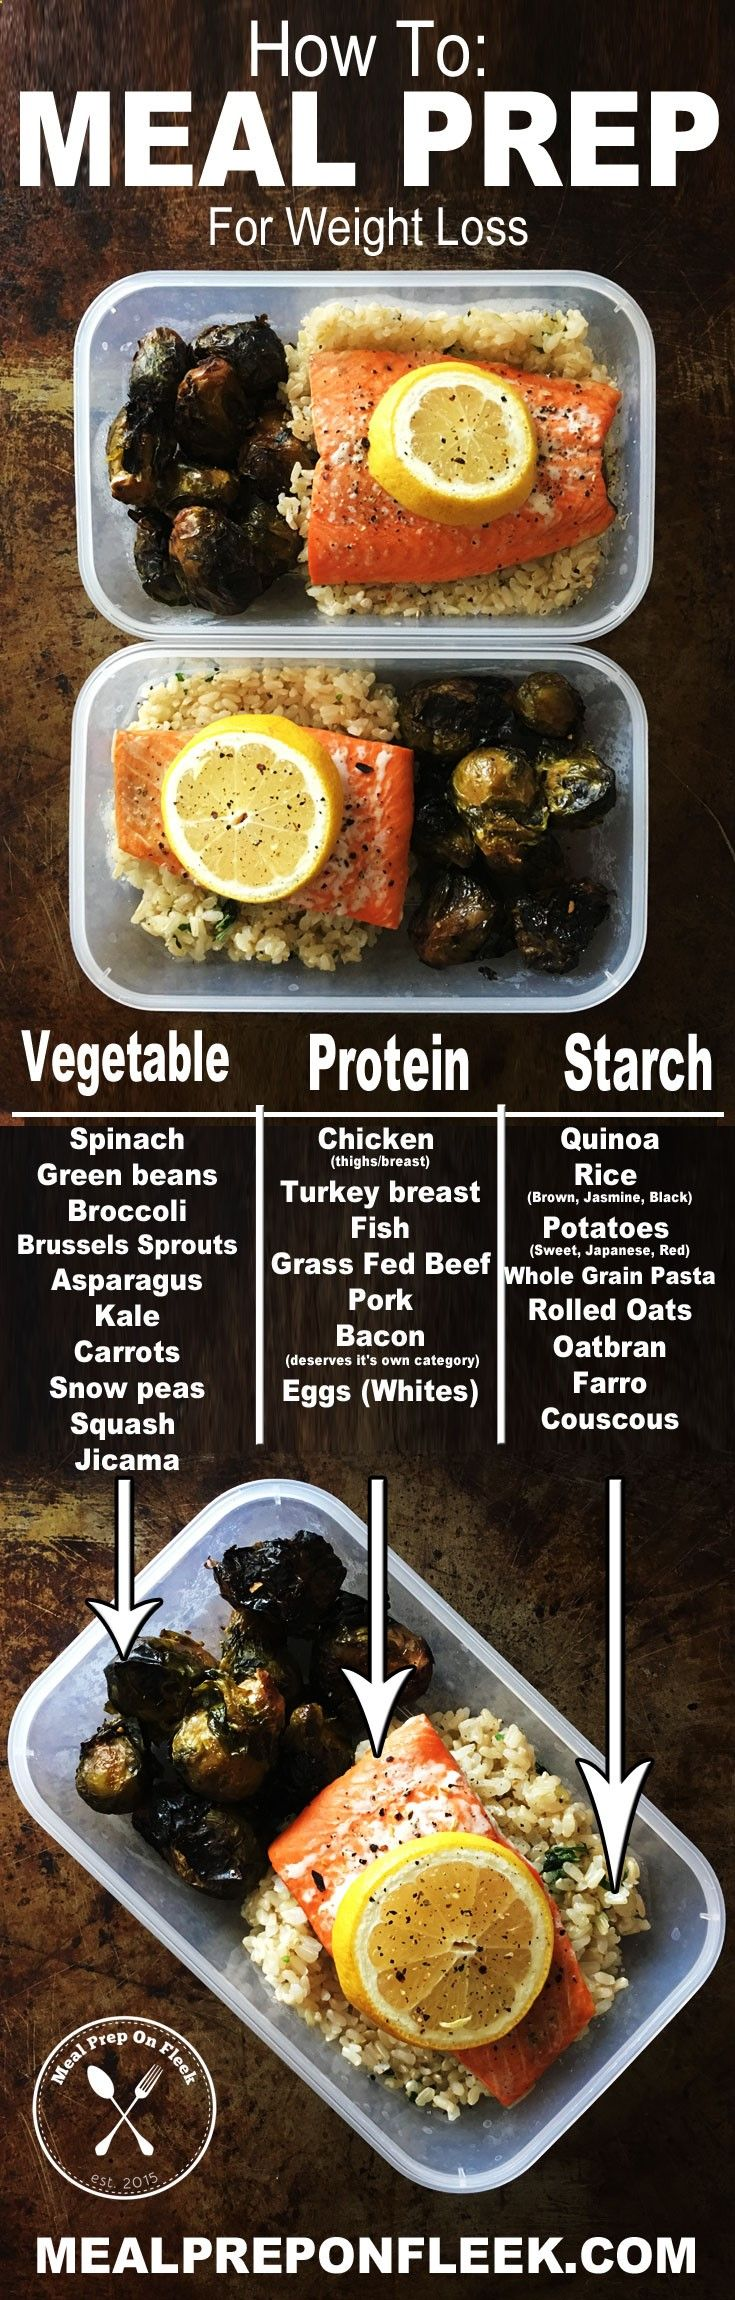 with the holidays upon us, making healthy choices can be hard. Not when you meal plan!! More